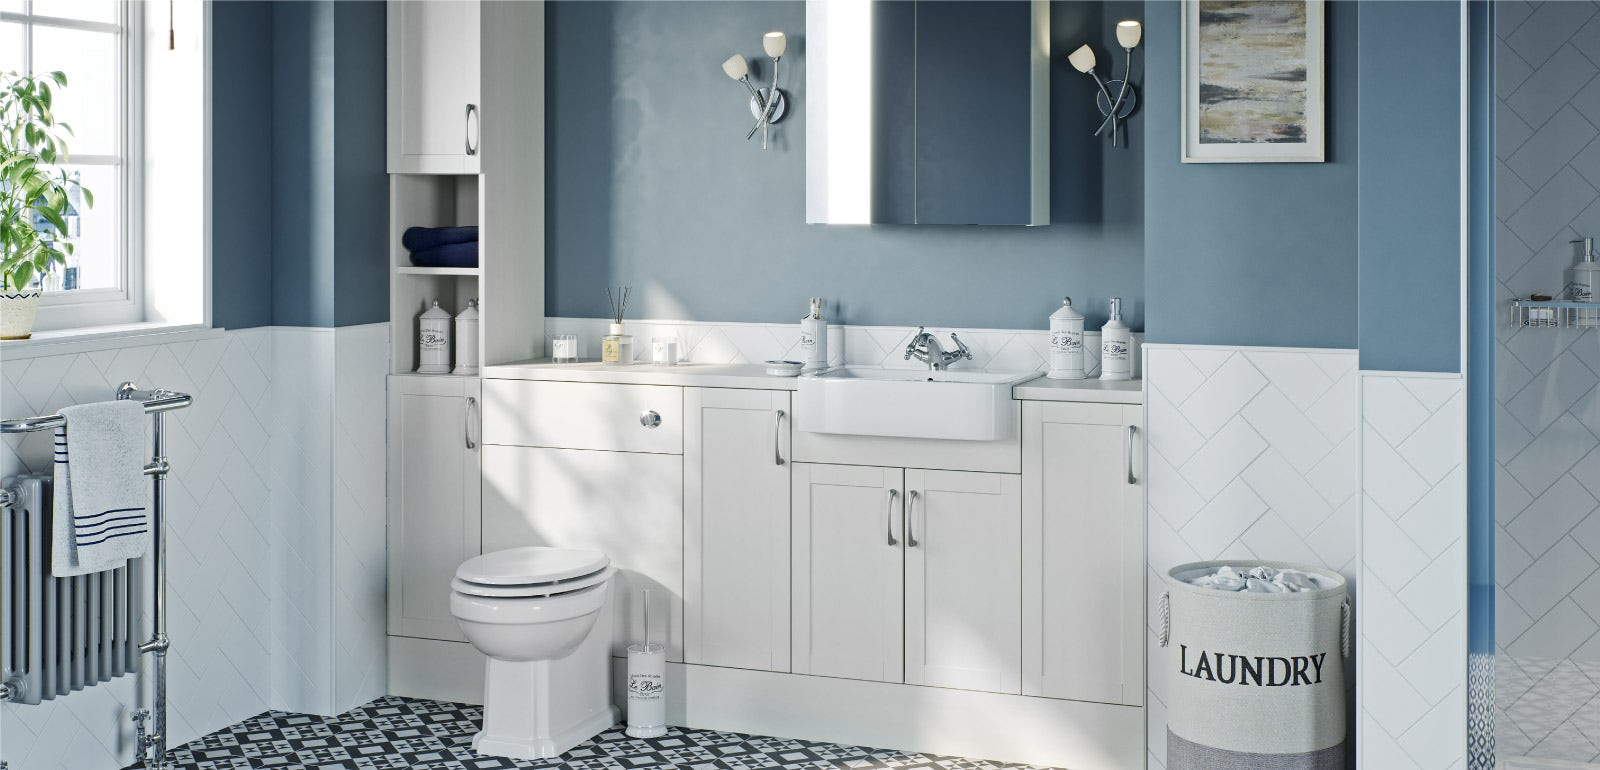 Fitted bathroom furniture: easy style and storage